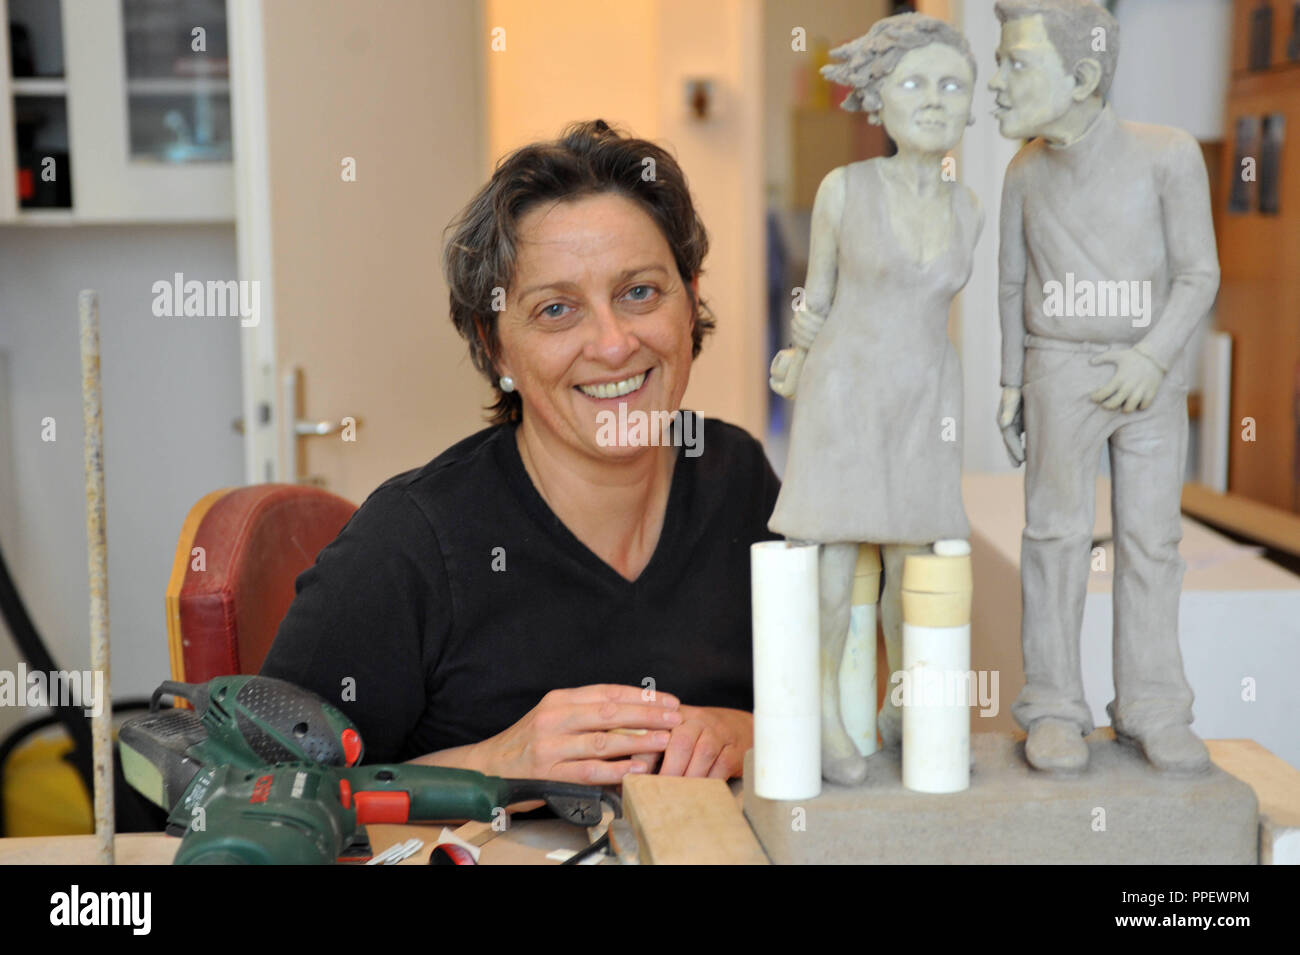 The sculptor Angela Eberhard forms small ceramic figures - people with flab, wrinkles and sympathetic ticks. - Stock Image